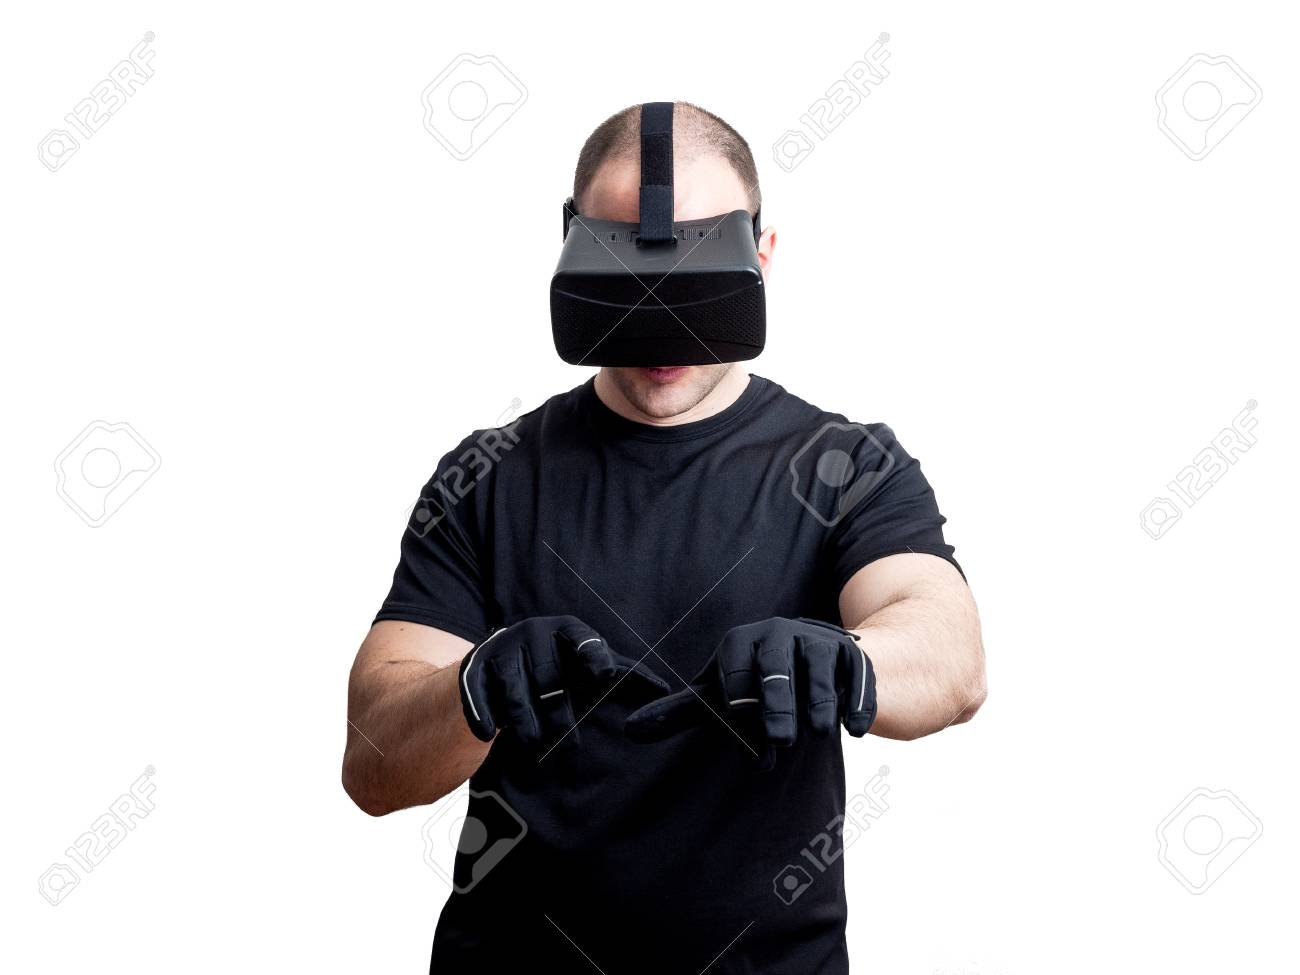 282dd7a4a186 Man using virtual reality headset at work with gloves isolated on white  background Stock Photo -